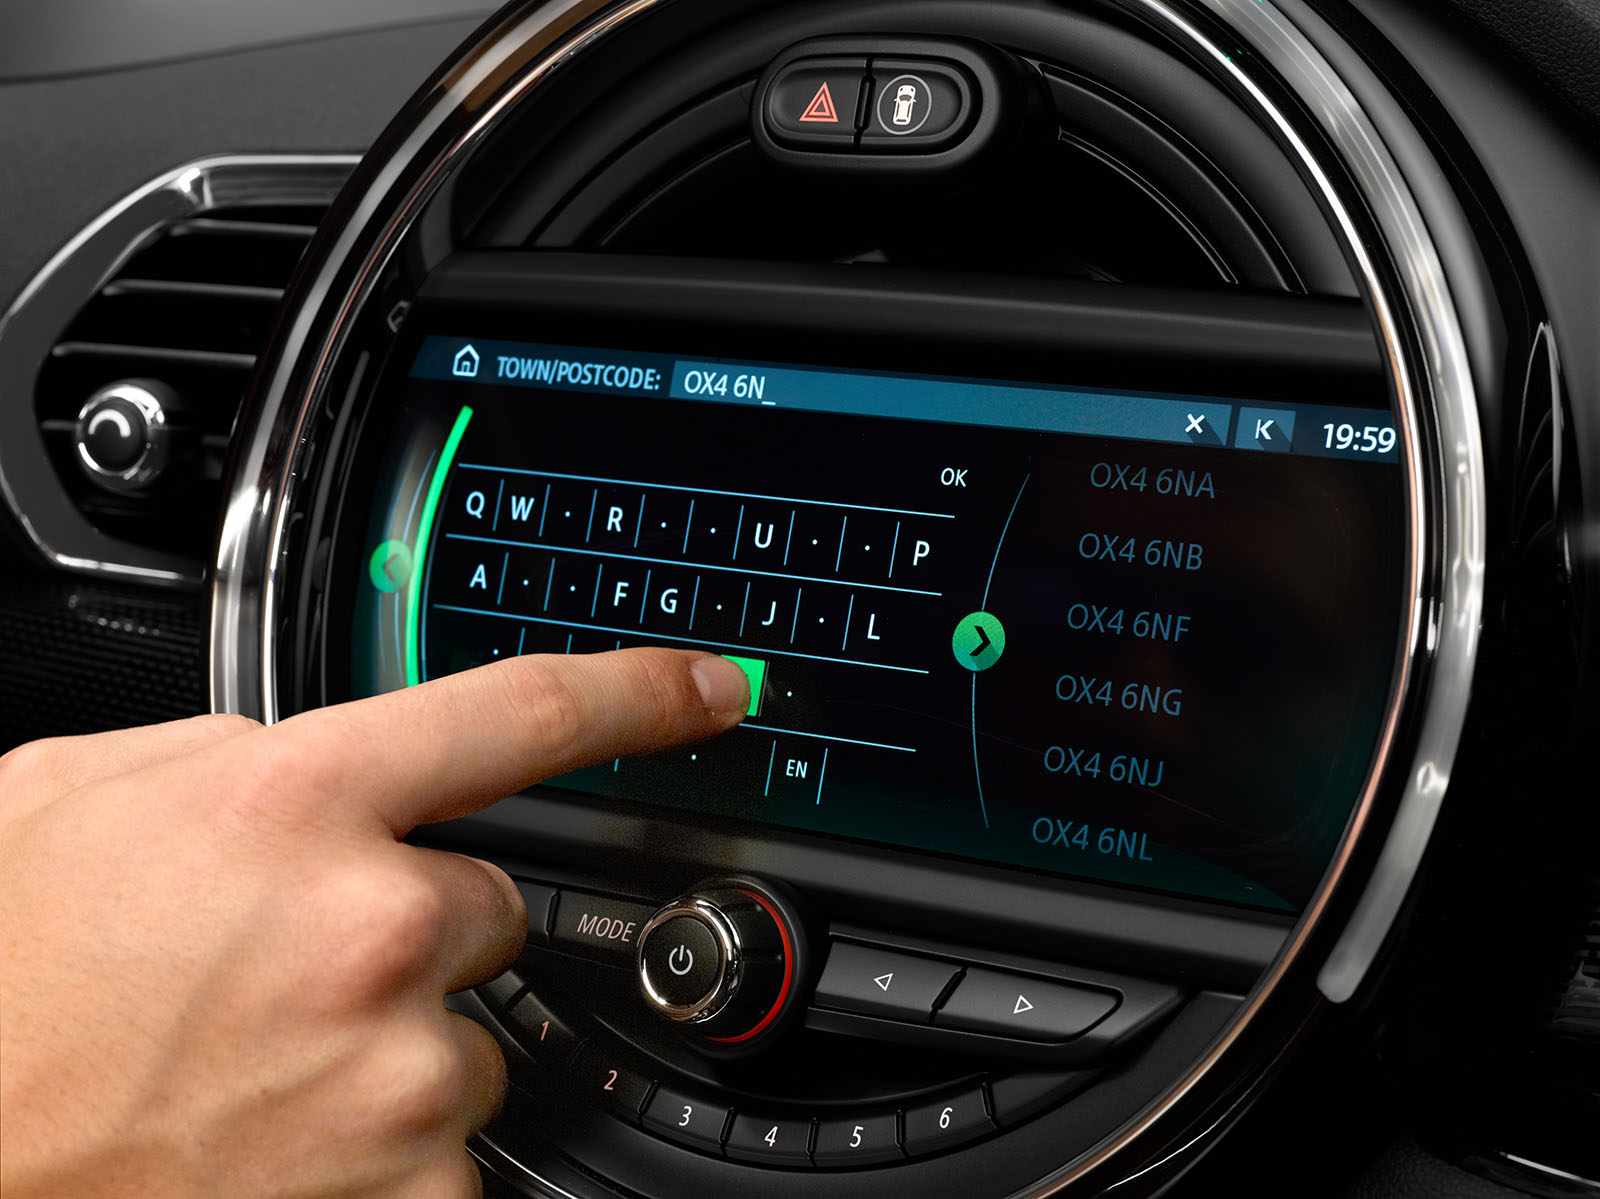 Minis New Touchscreen Navigation Is A Huge Upgrade Motoringfile